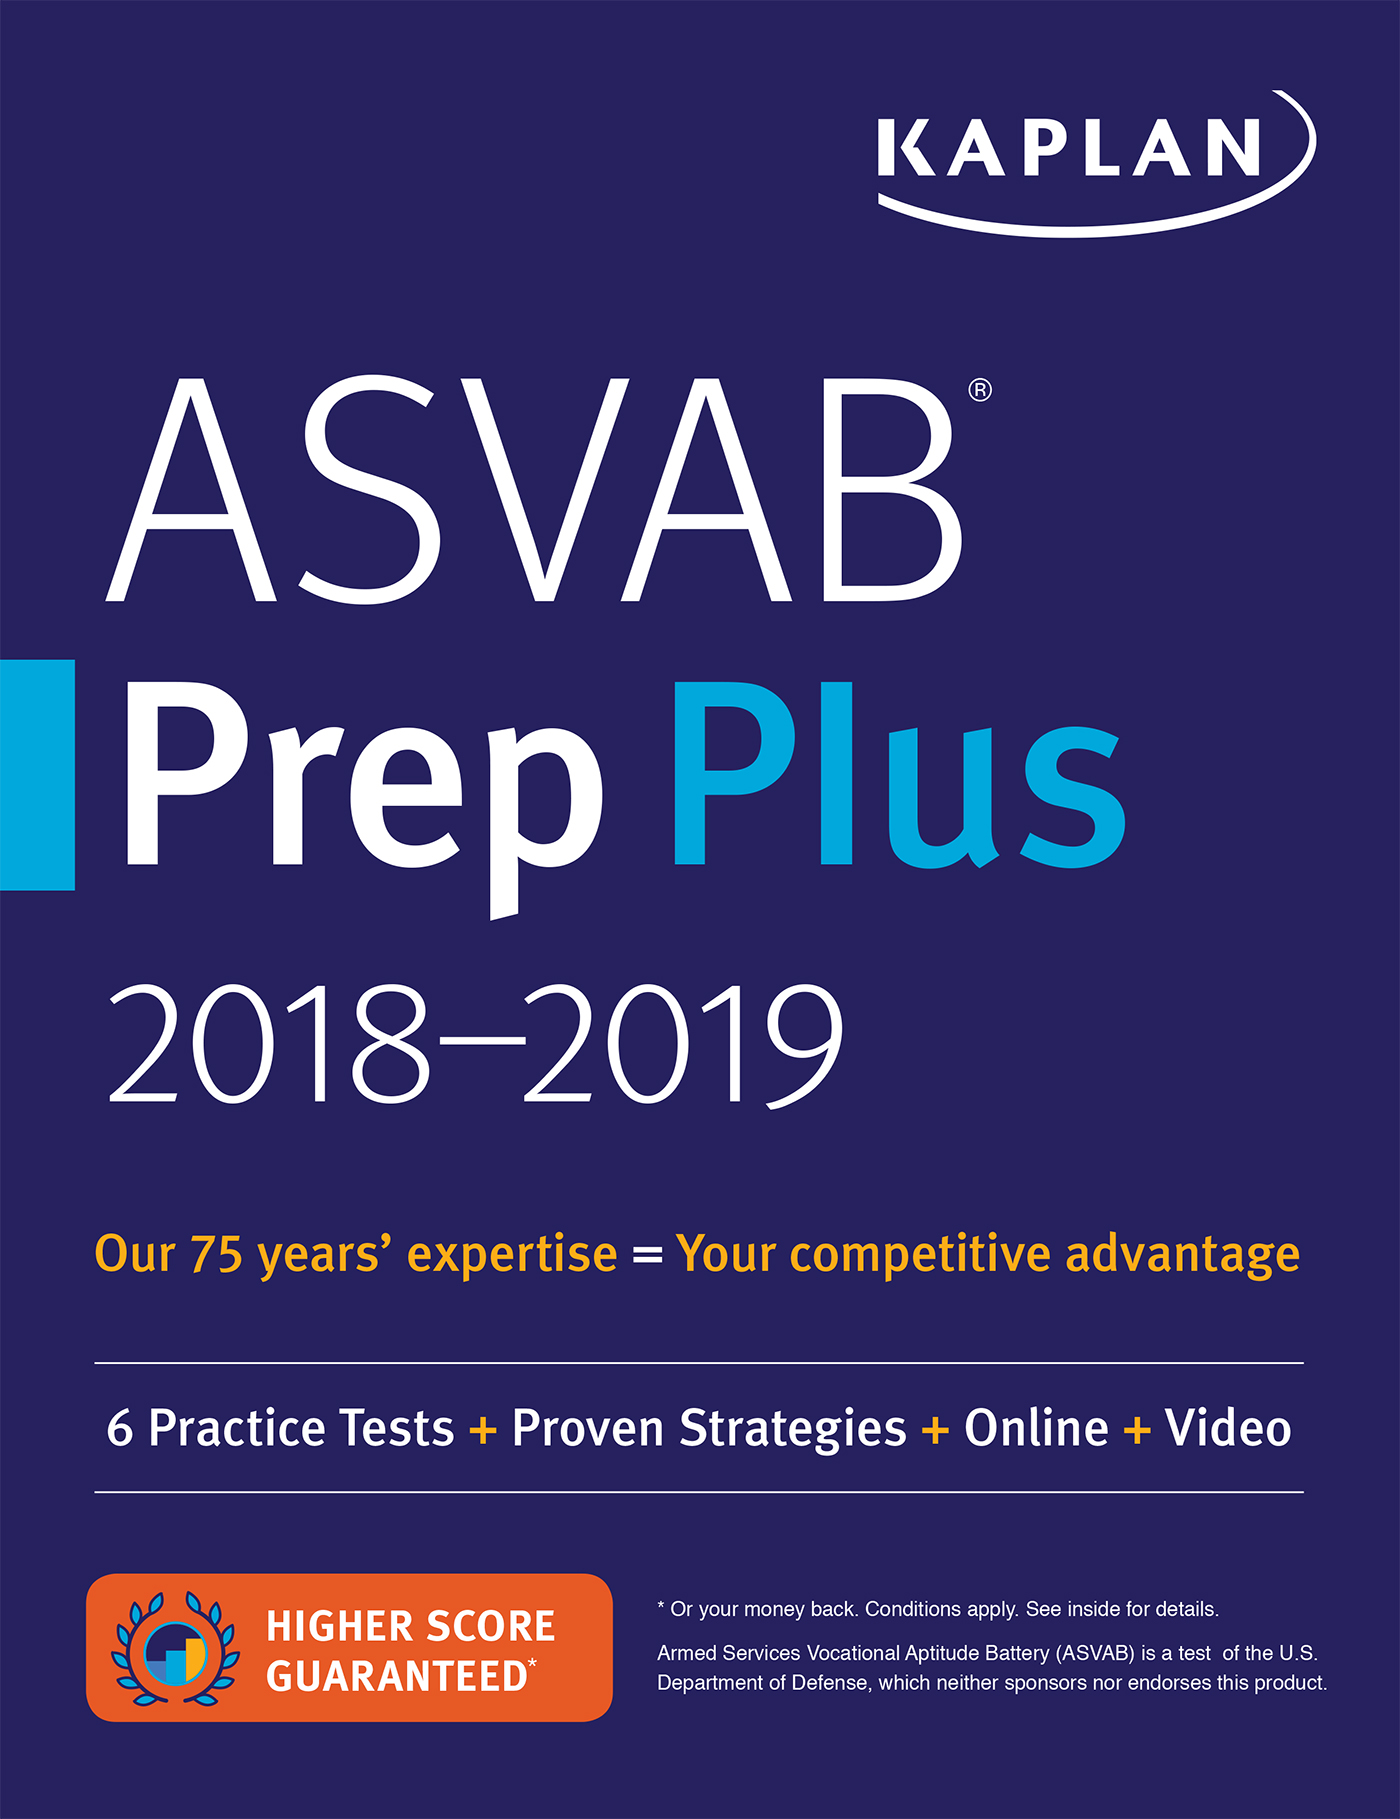 Kaplan Test Prep offers test preparation, practice tests and private tutoring for more than 90 standardized tests, including SAT, GRE, GMAT, LSAT, USMLE & NCLEX.